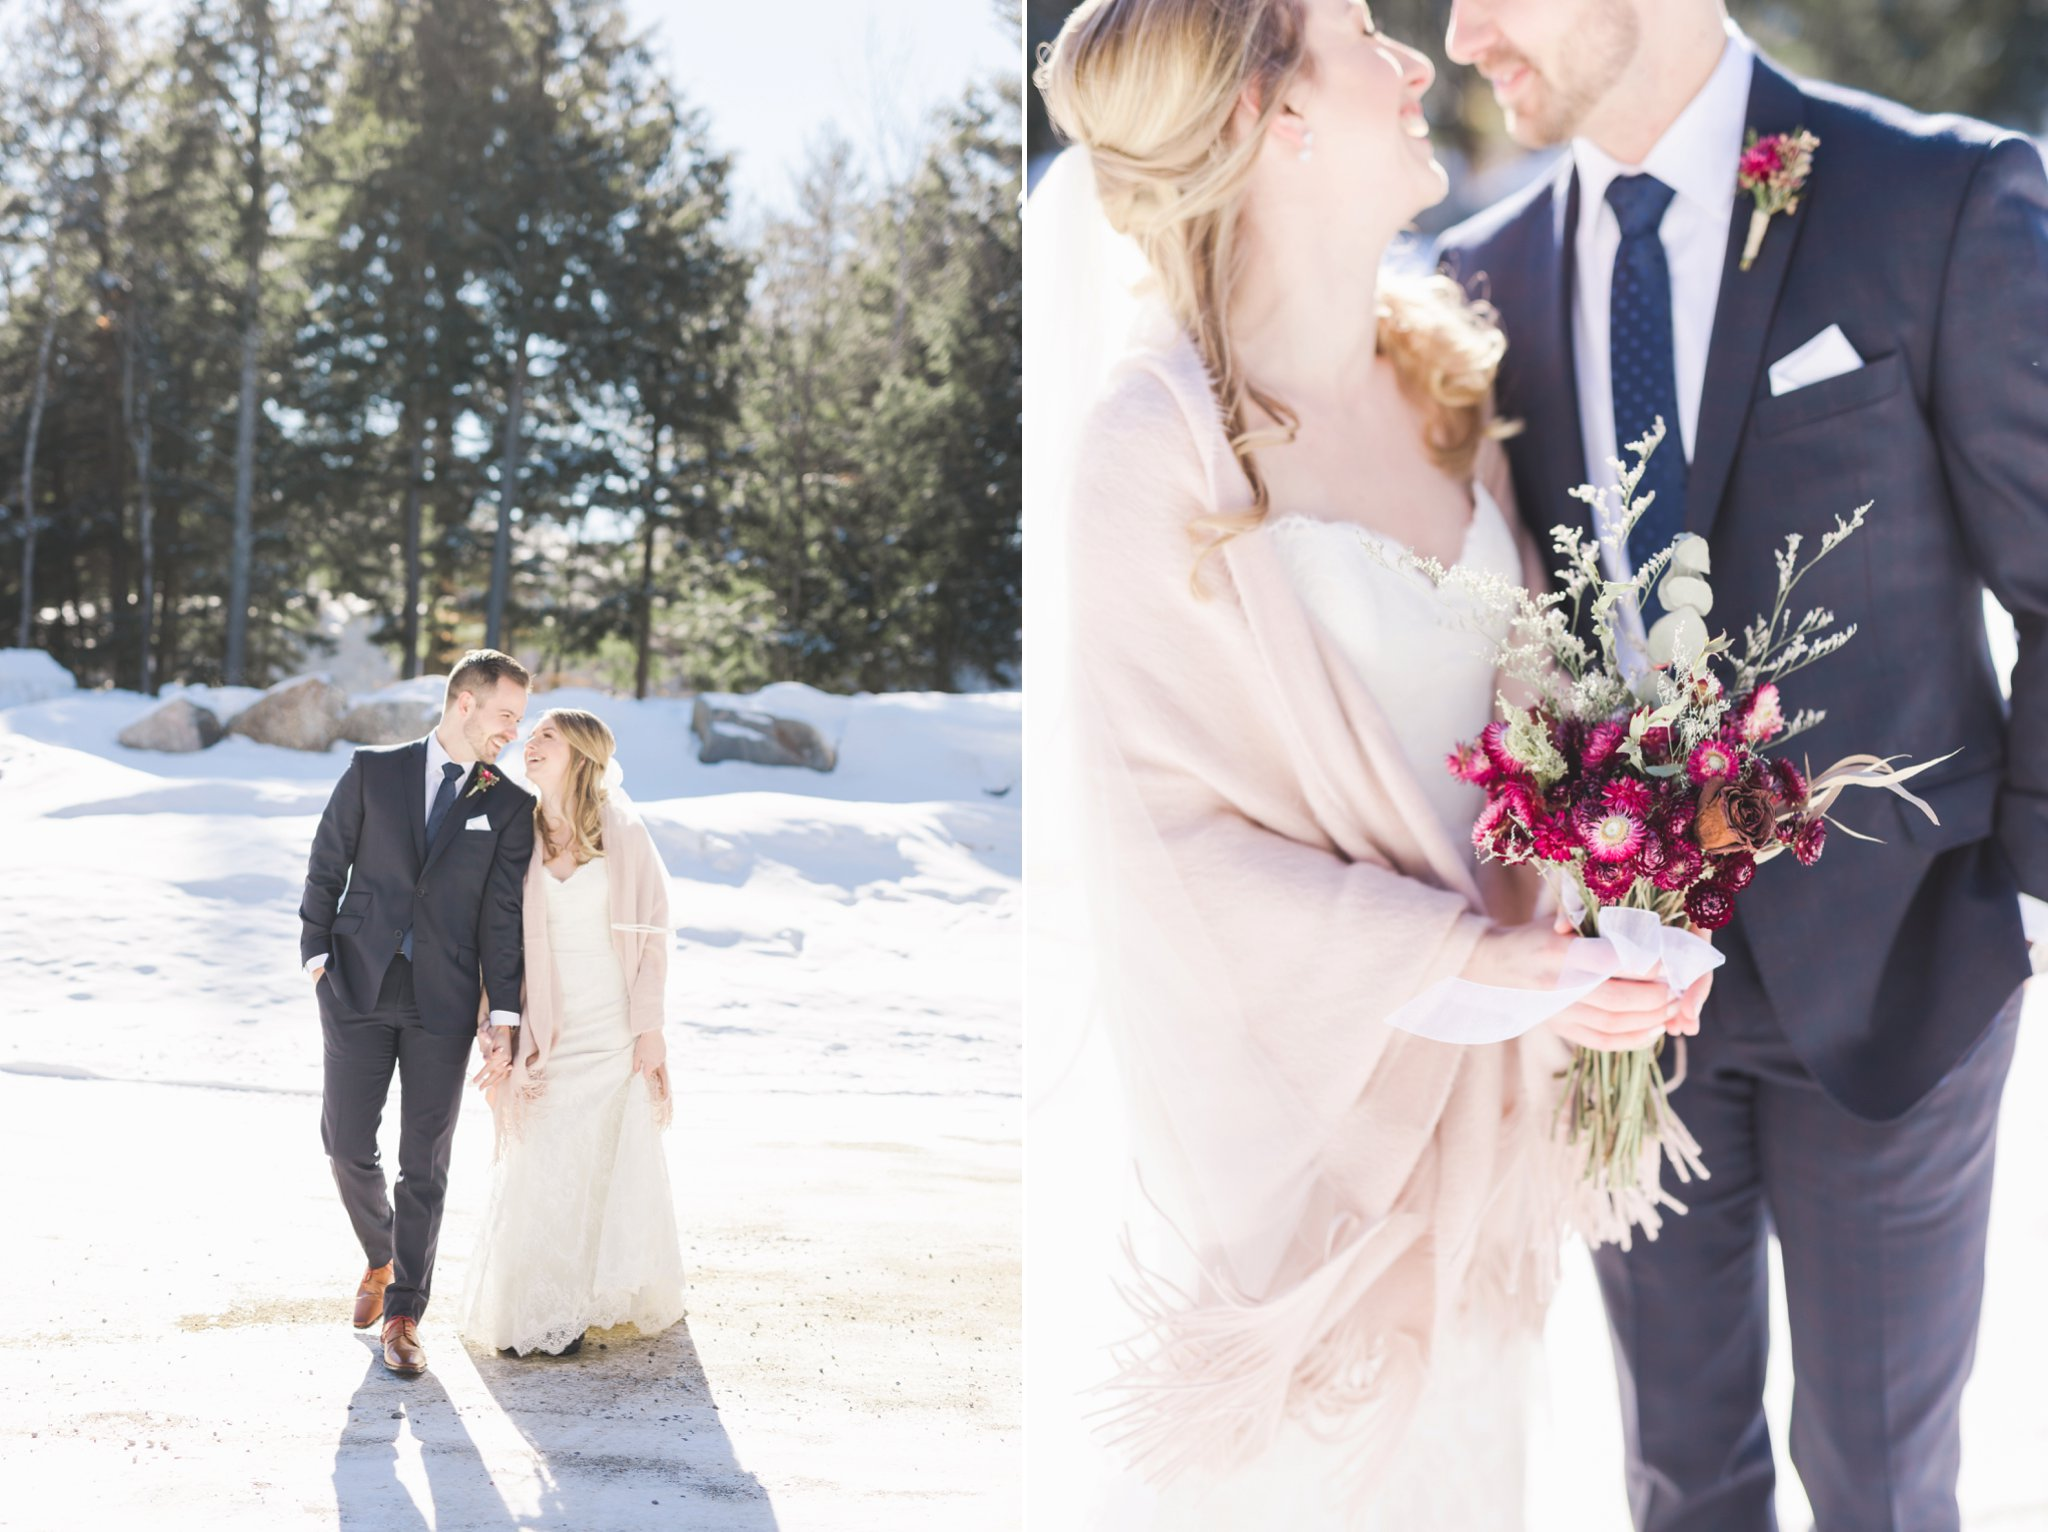 Bride and groom in the snow at the Winter wedding at Le Belvedere